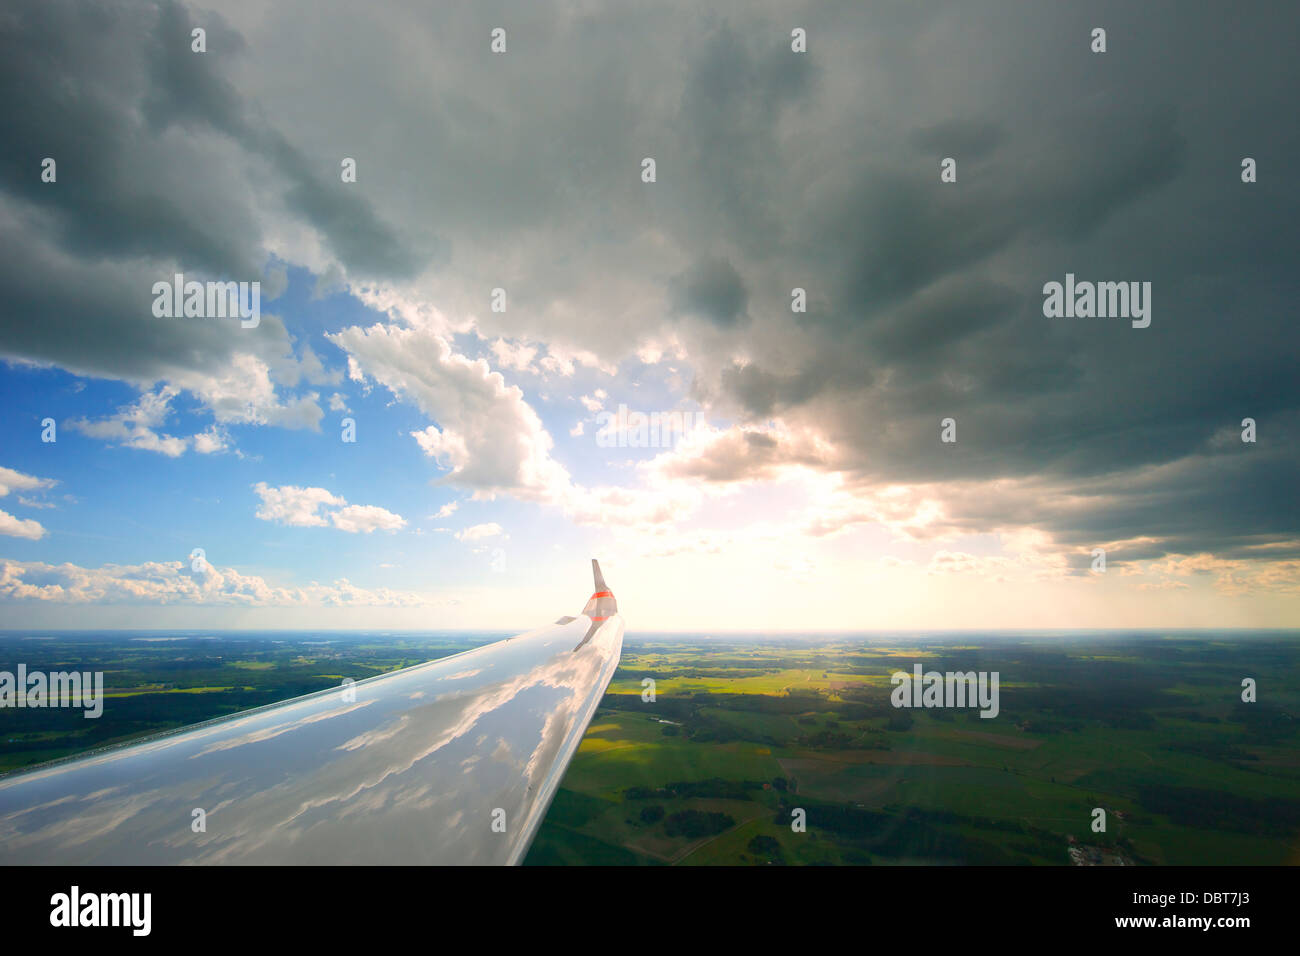 Clouds reflecting in airplane wing - Stock Image